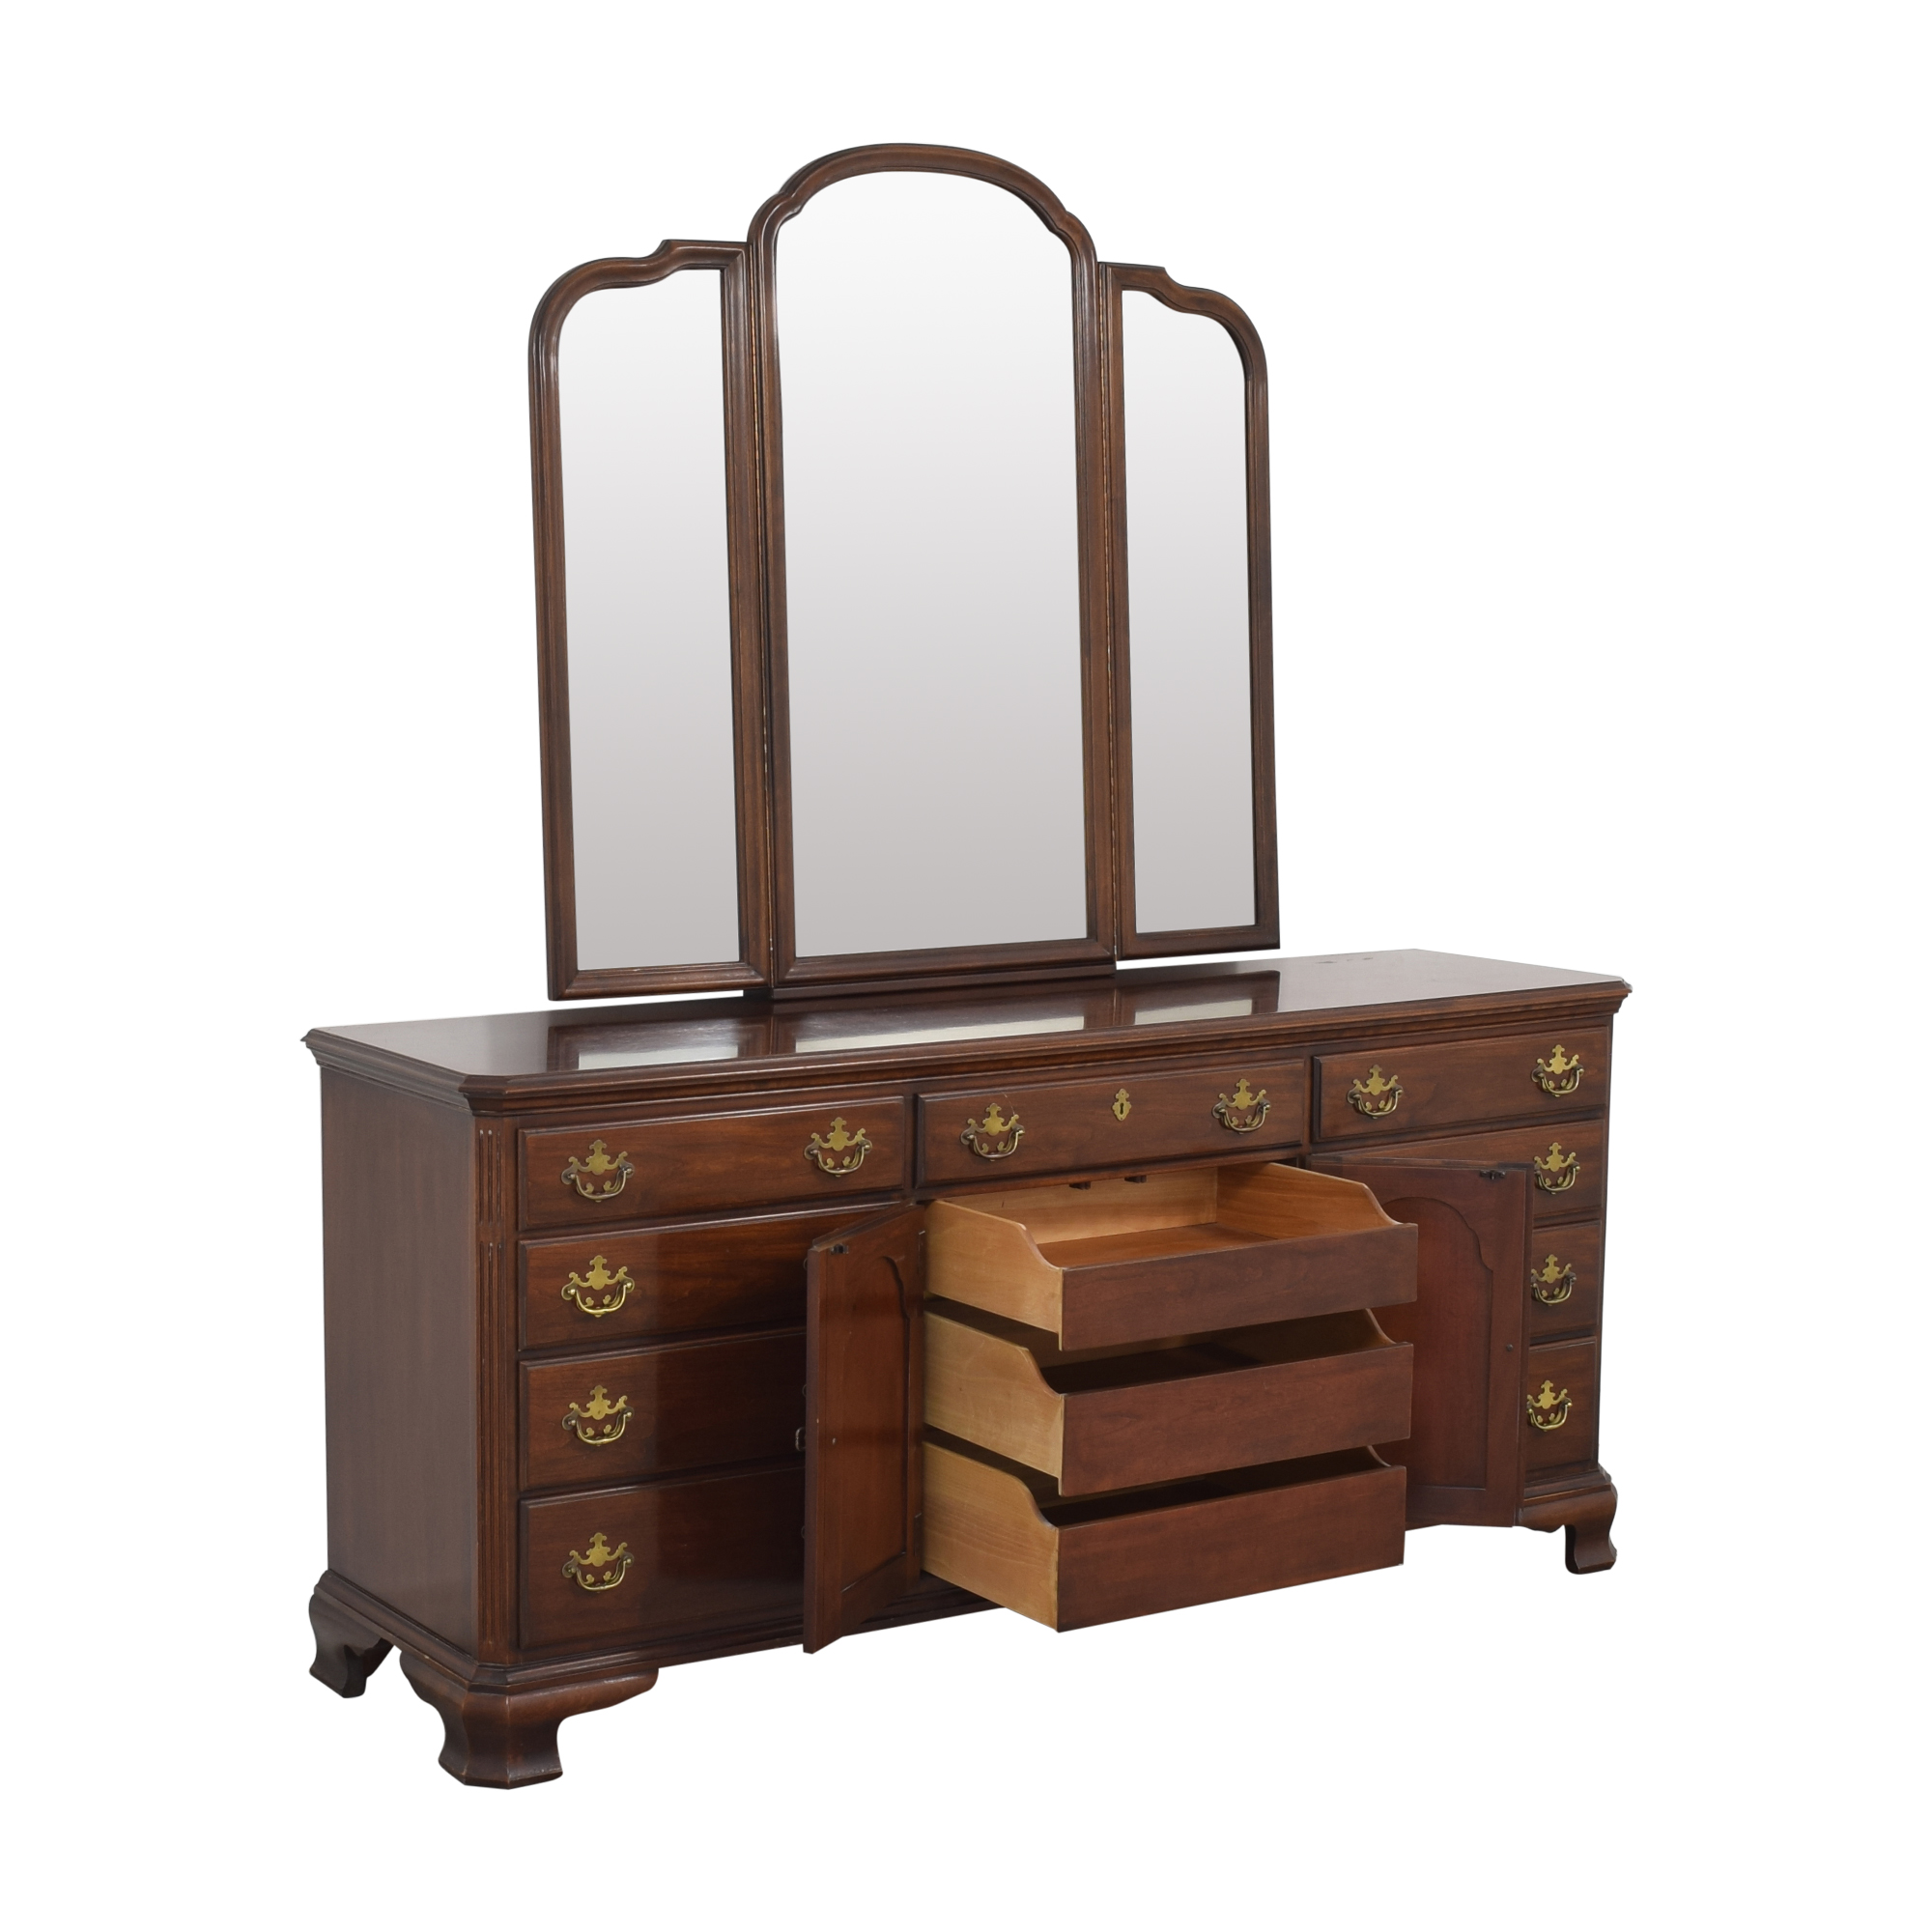 Drexel Drexel Triple Dresser with Trifold Mirror on sale